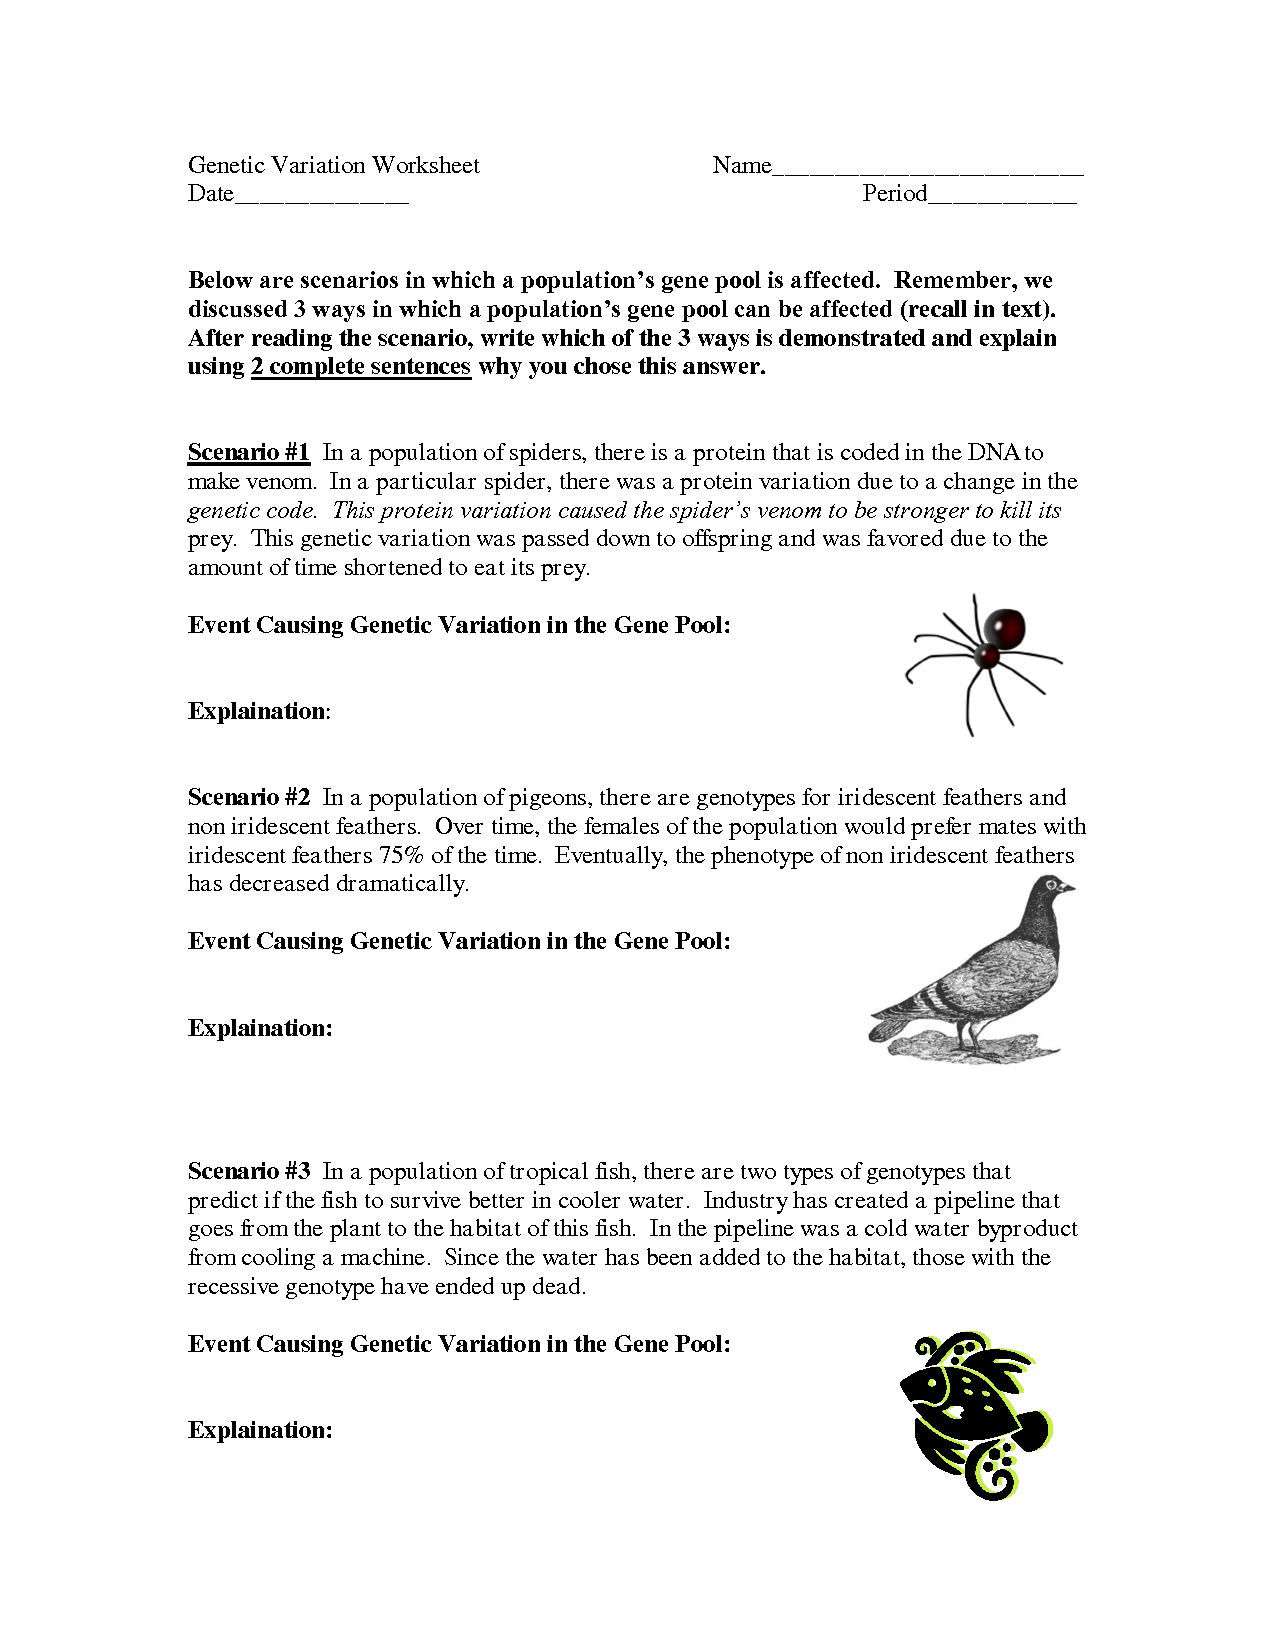 Genetic Variation Worksheet